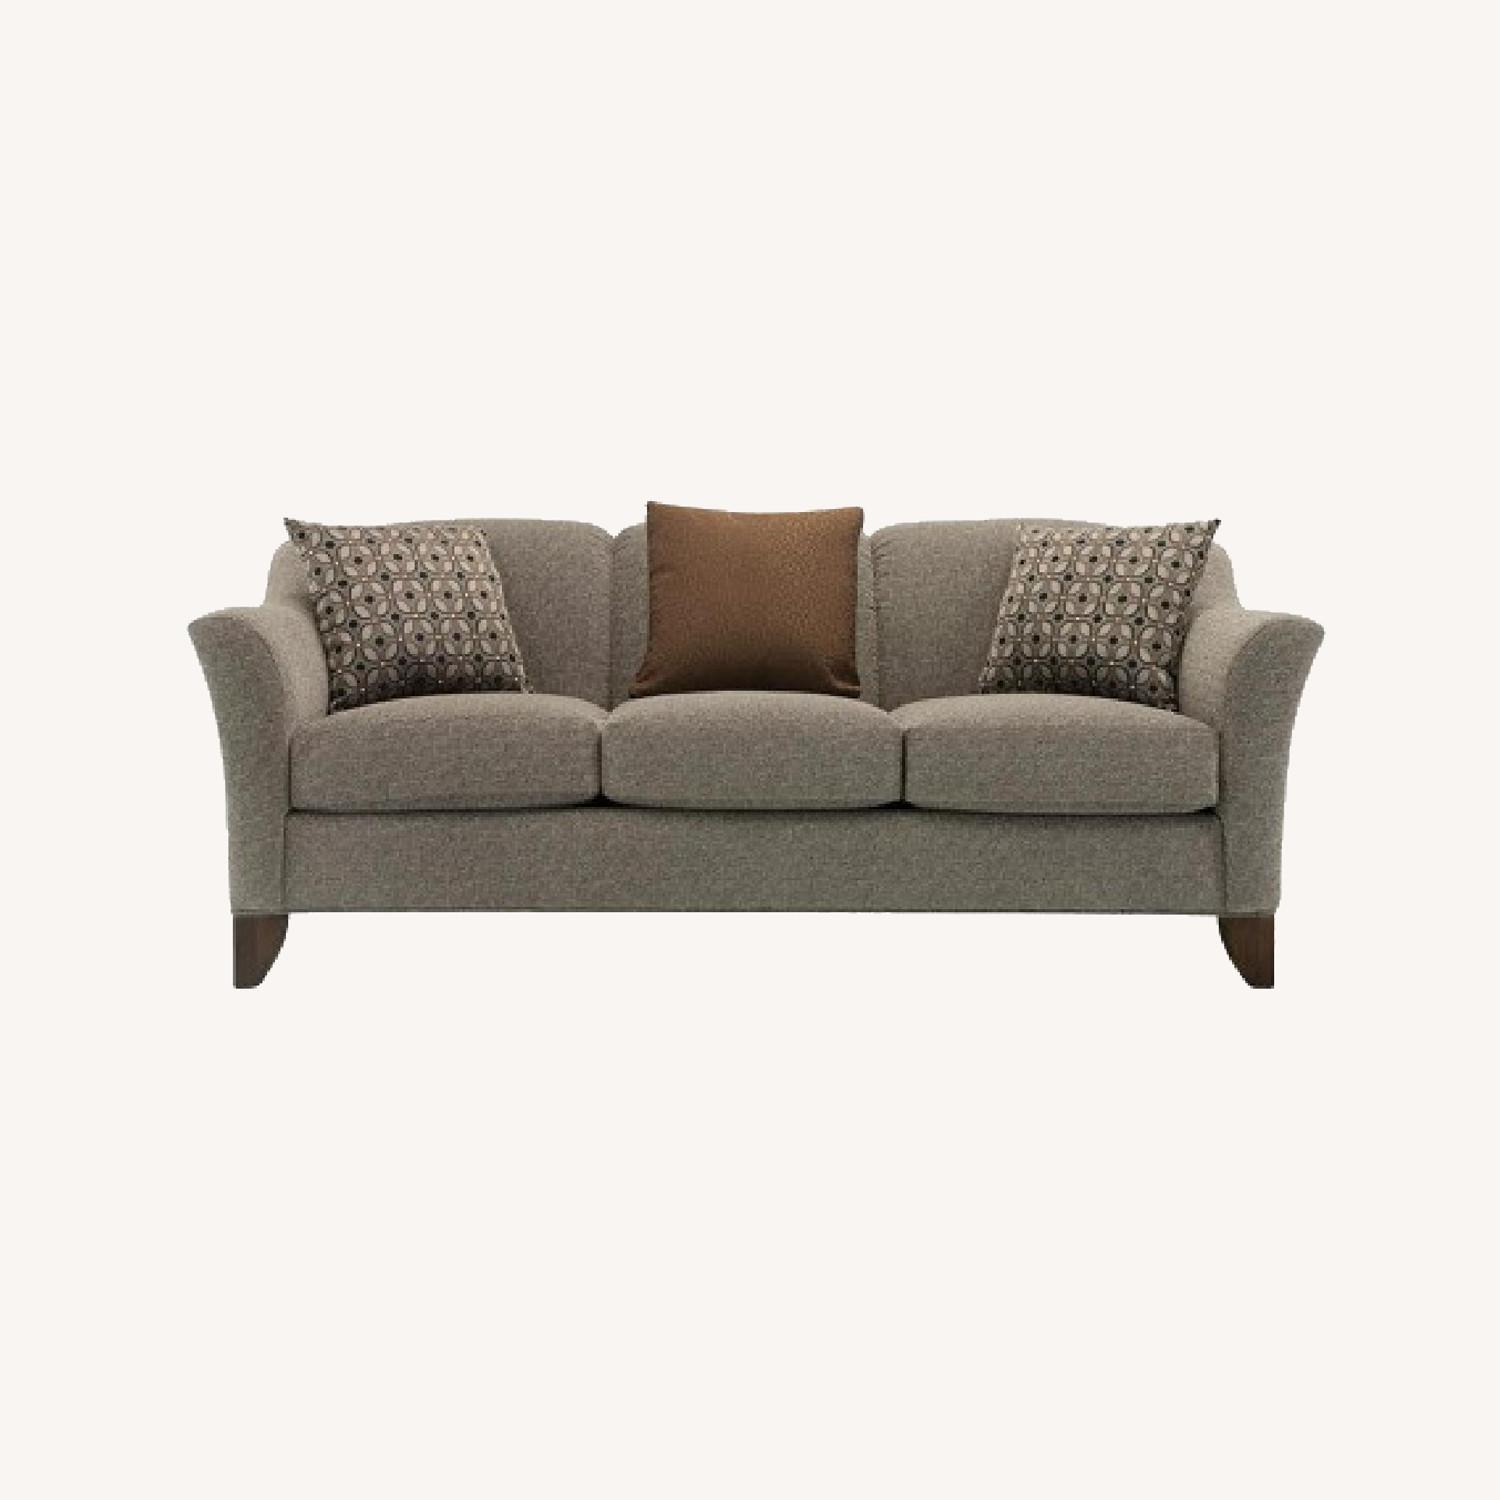 Raymour & FlaniganMuted Hunter Green Chenille 3-Seater Couch - image-0